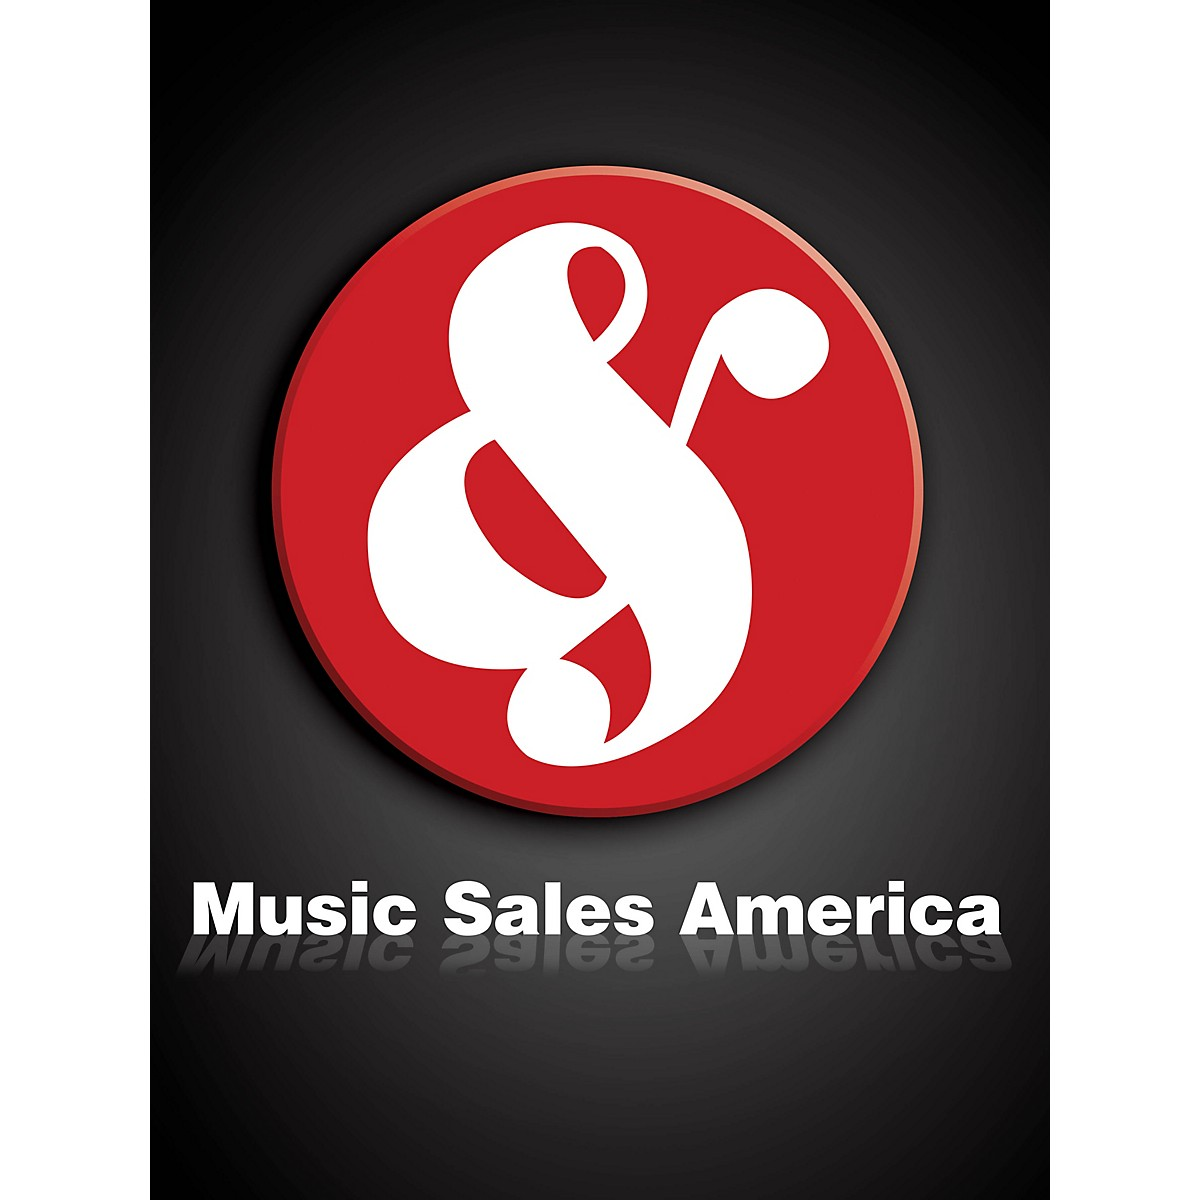 Hal Leonard Prelude, Danse, Final (Oboe and Piano Reduction) Music Sales America Series by Jean Francaix